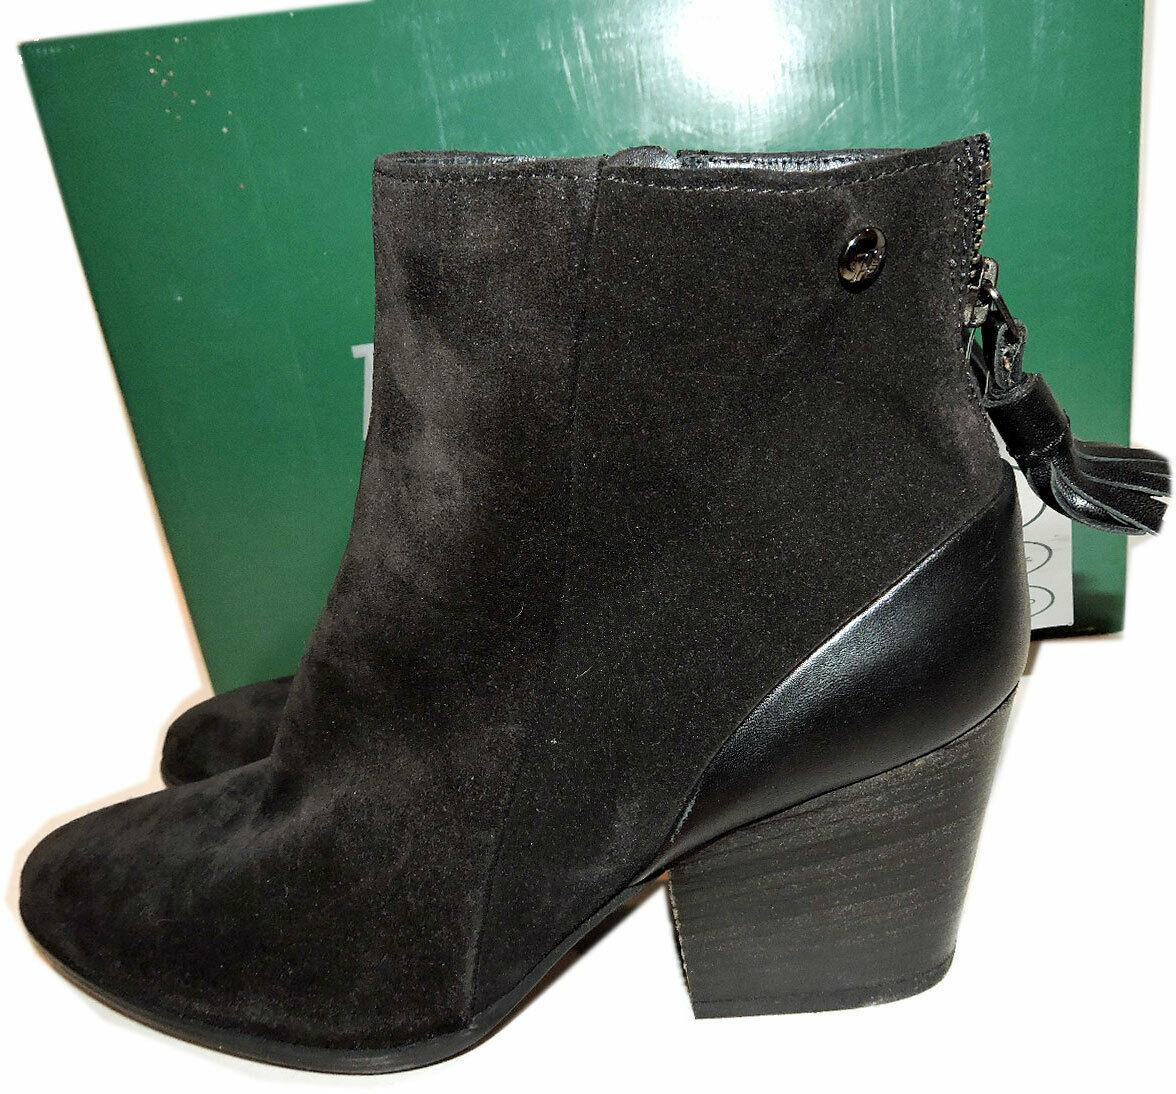 $398 Paul Green Ankle Boots Jada Black Suede Booties 7.5 Back Zipper Shoes Boot